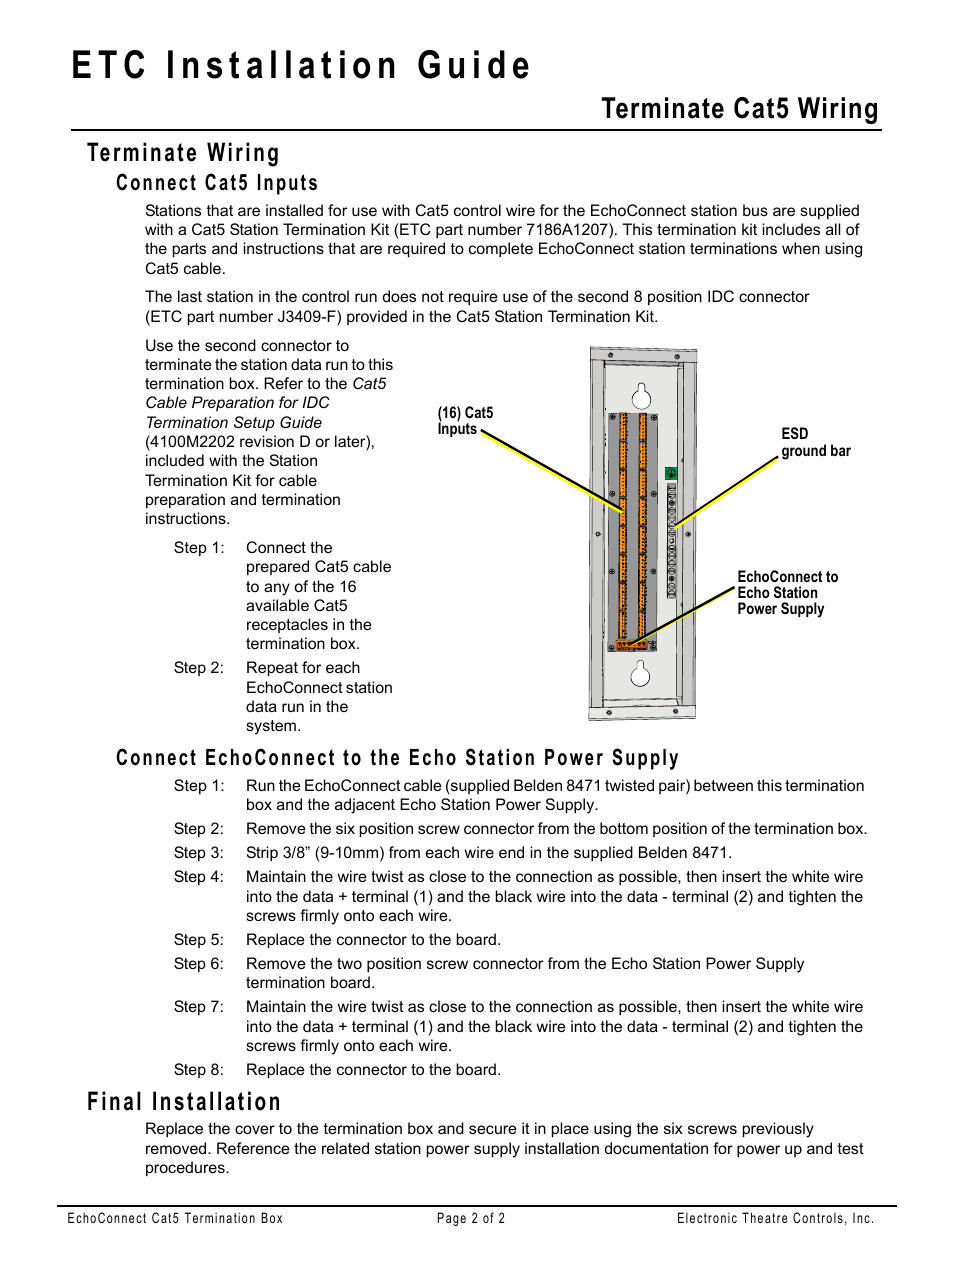 terminate wiring, connect cat5 inputs, final installation | terminate cat5  wiring | etc echoconnect